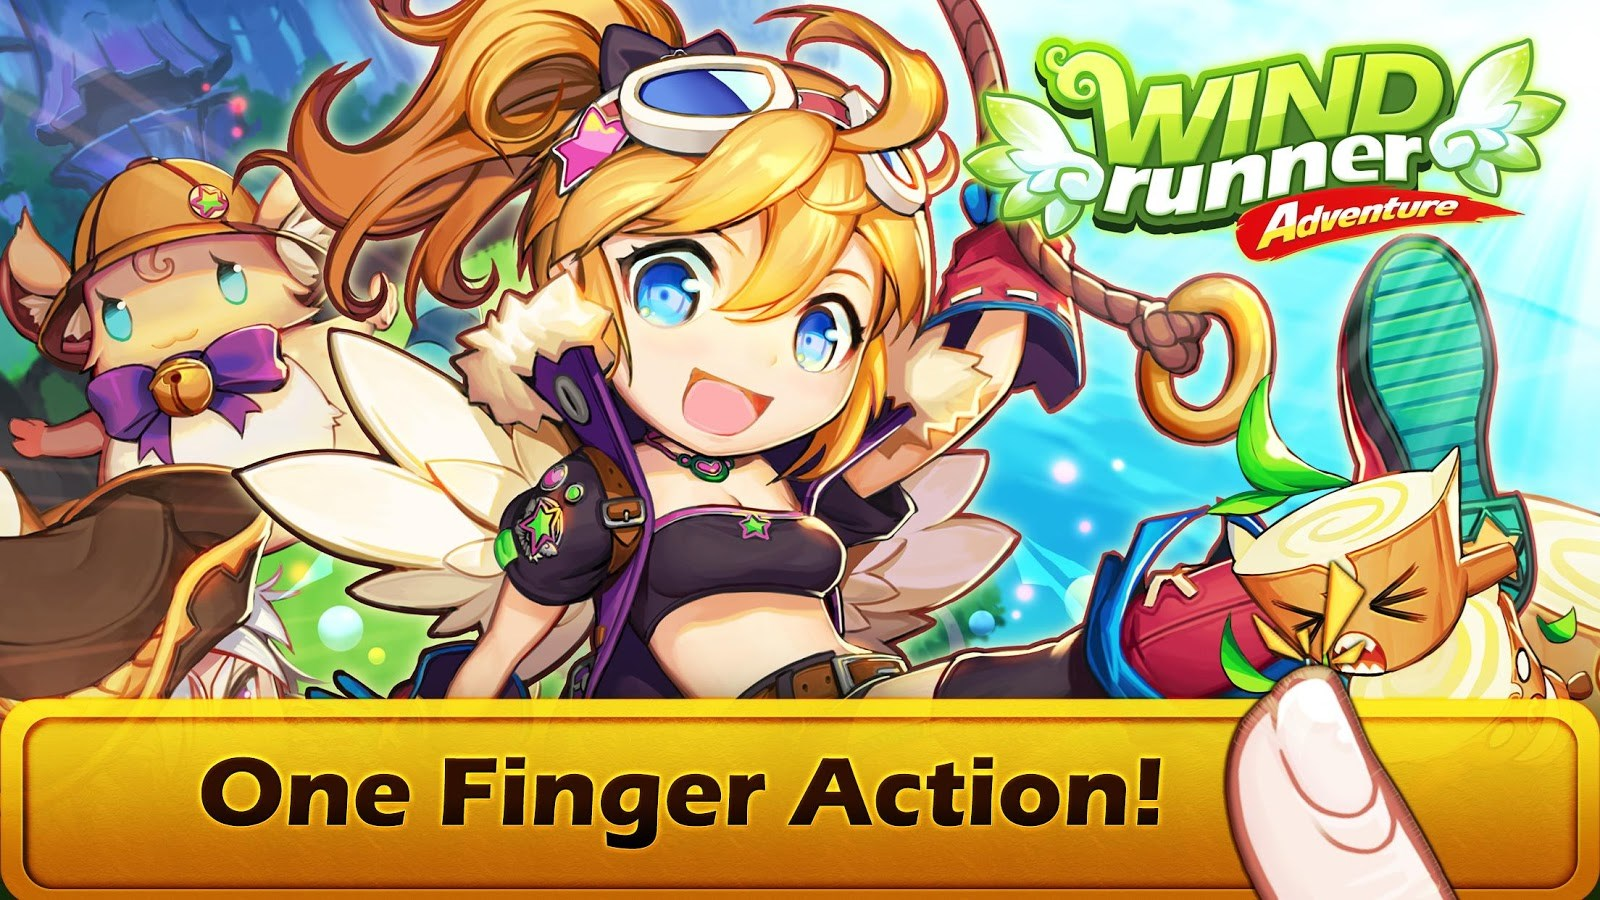 WIND Runner Adventure - Imagem 1 do software